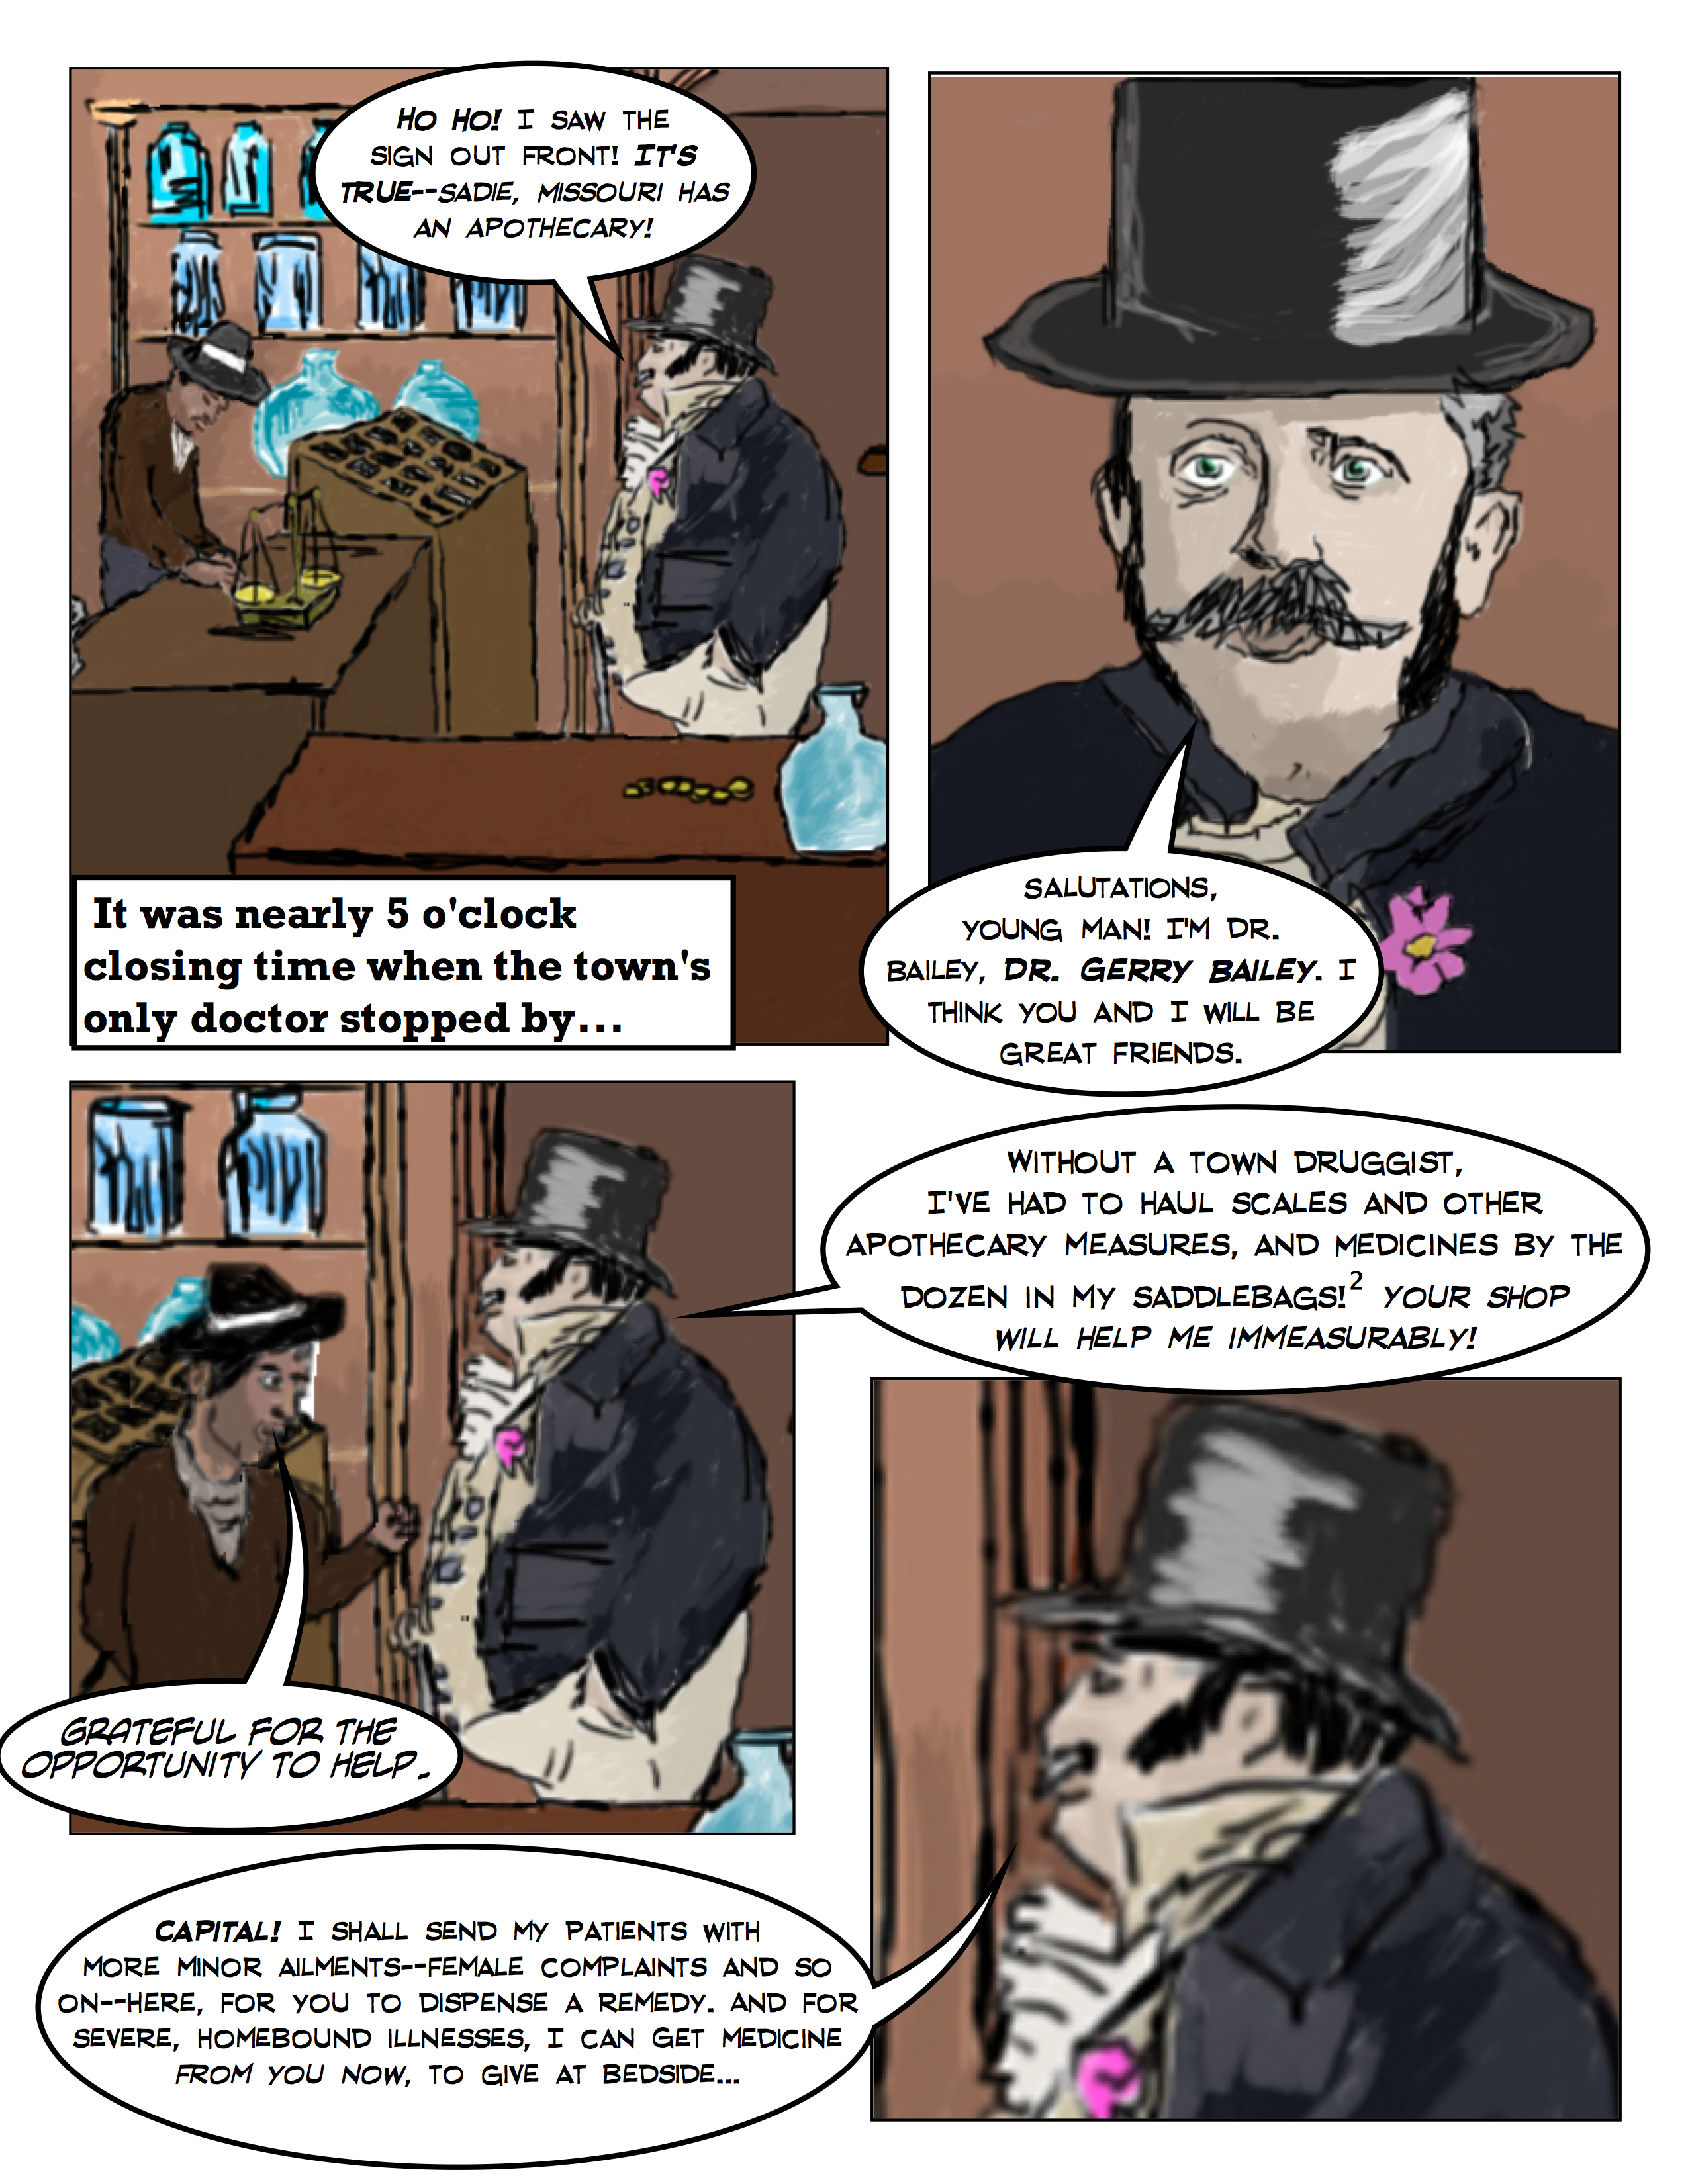 Wild West Apothecary: Saul's First Day As A Pharmacist 3